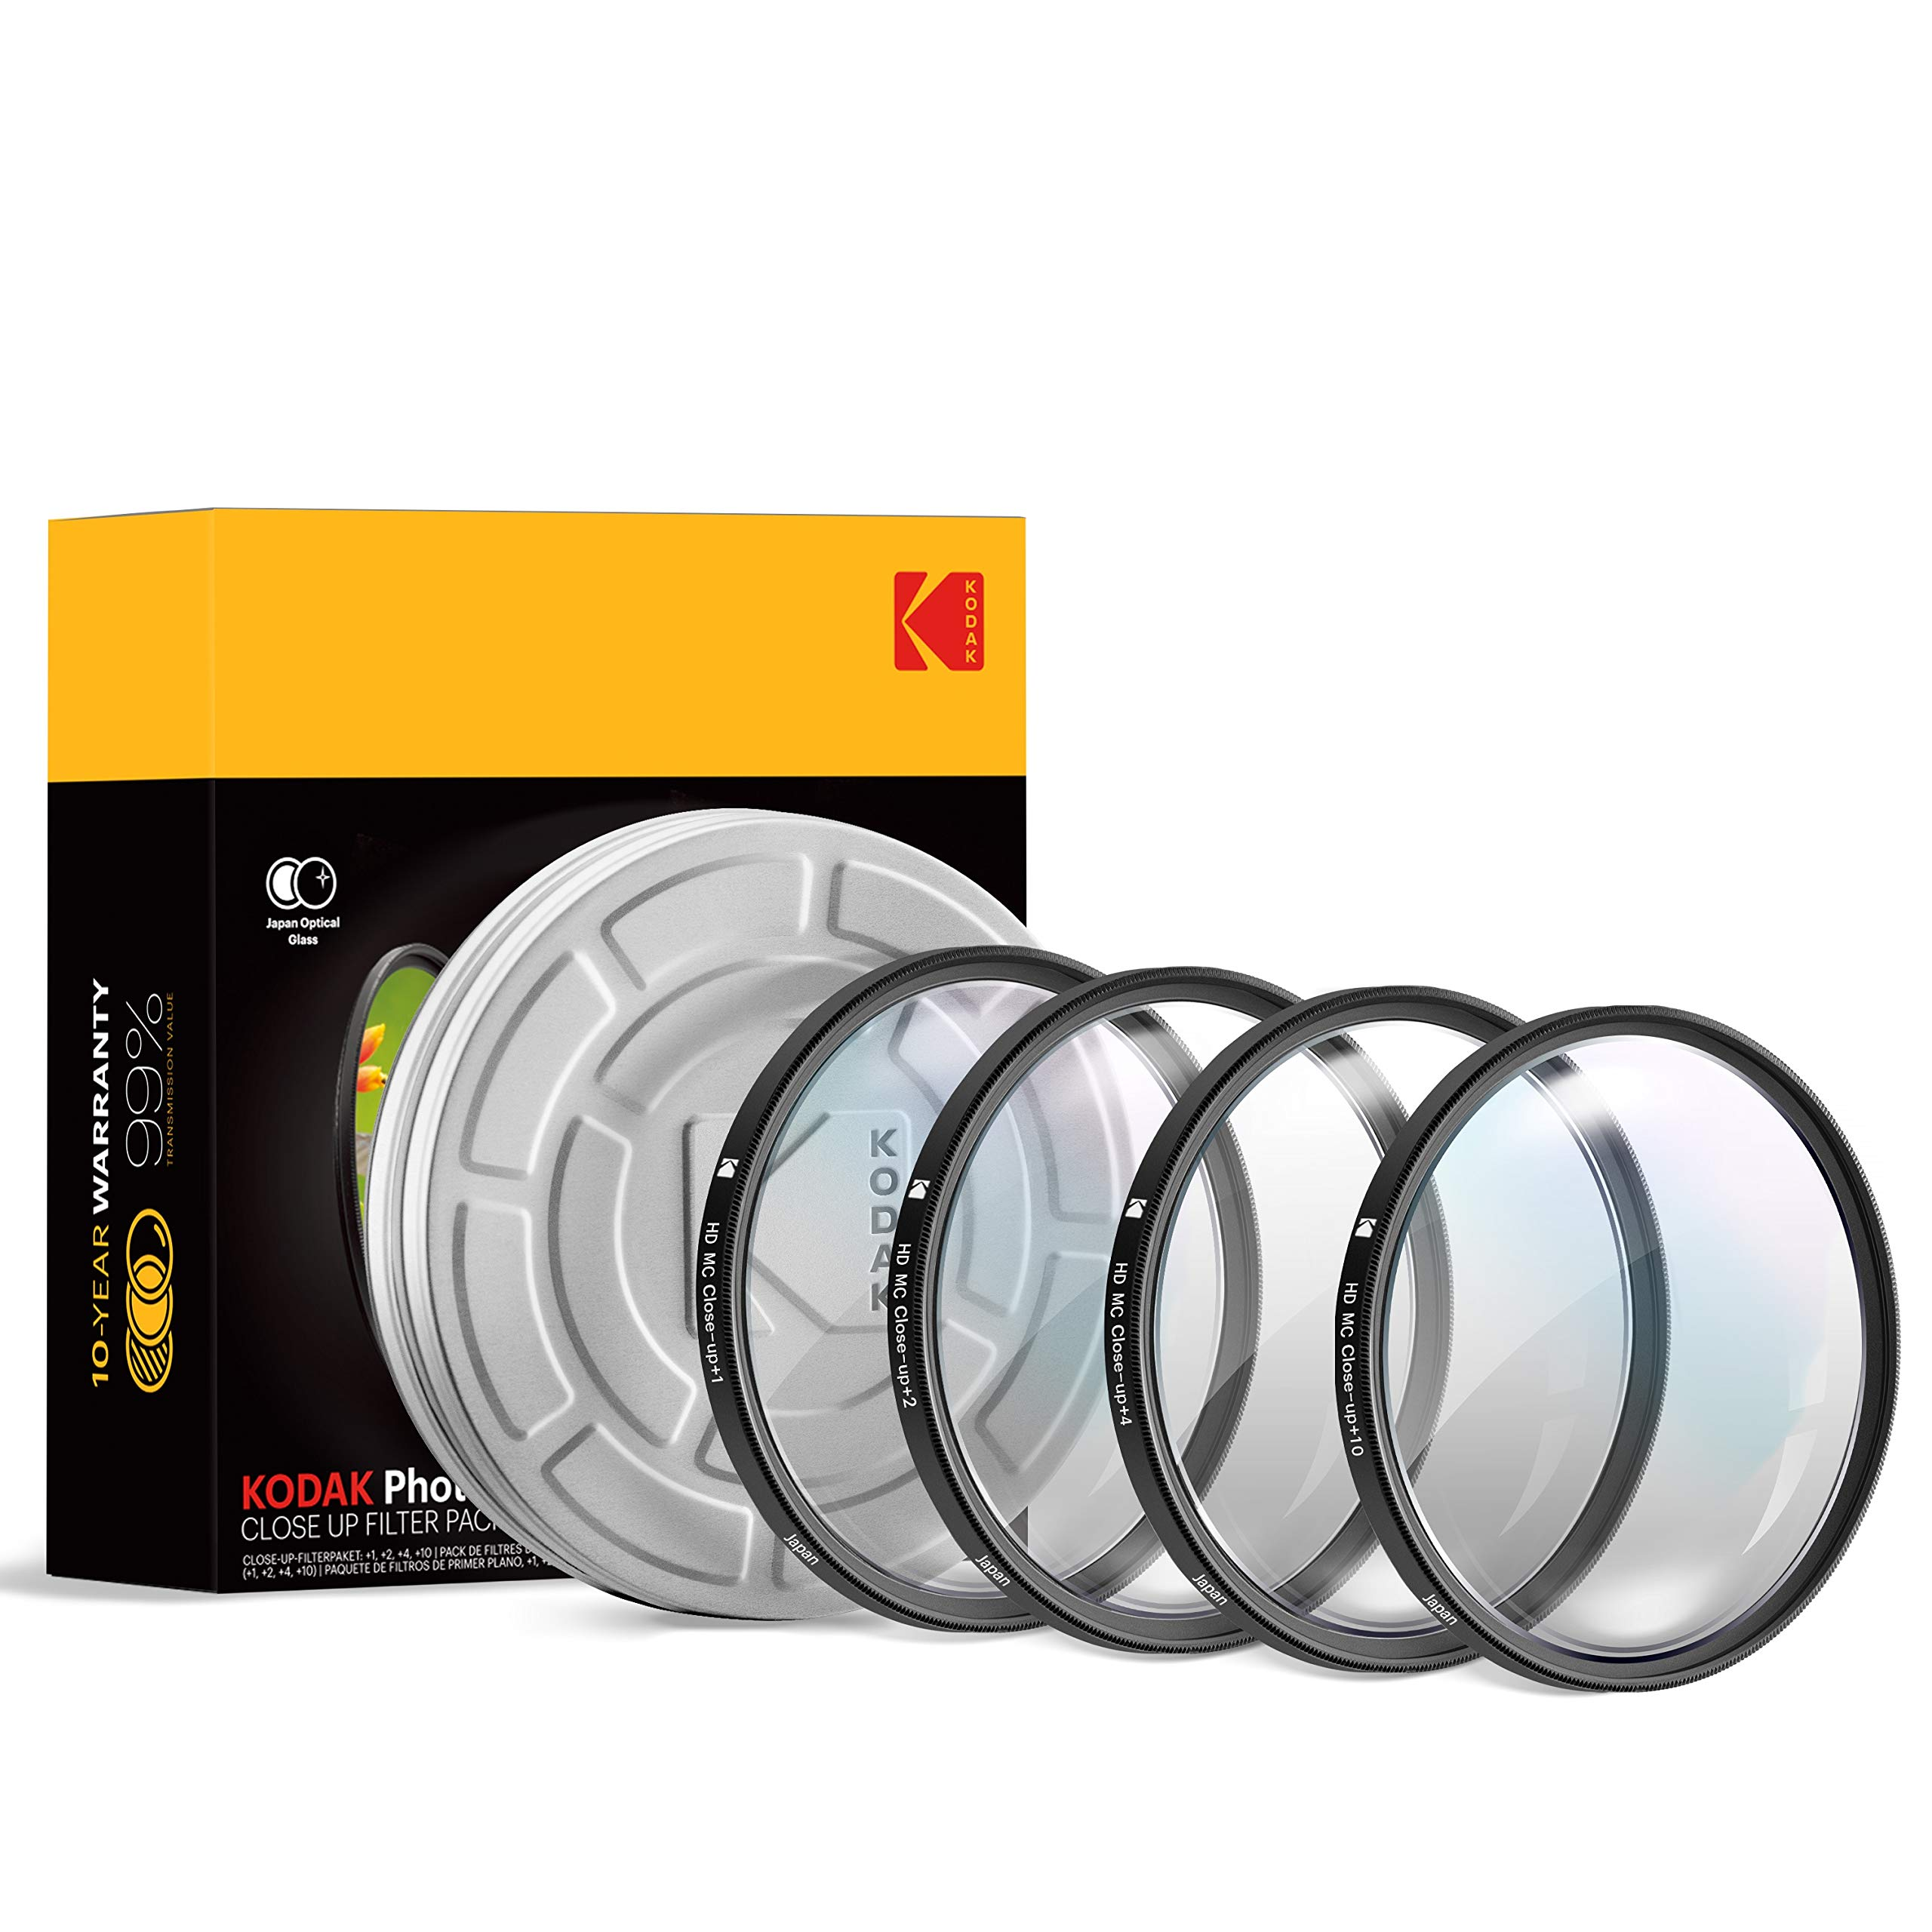 KODAK 37mm Close-Up Filter Set w/Mini Guide | Pack of [4] +1, 2, 4, 10 Macro Lens Filters | Achieve Greater Magnification, Clarity & Focus for Close Up Photography| MultiCoated 16-Layer Nano Glass